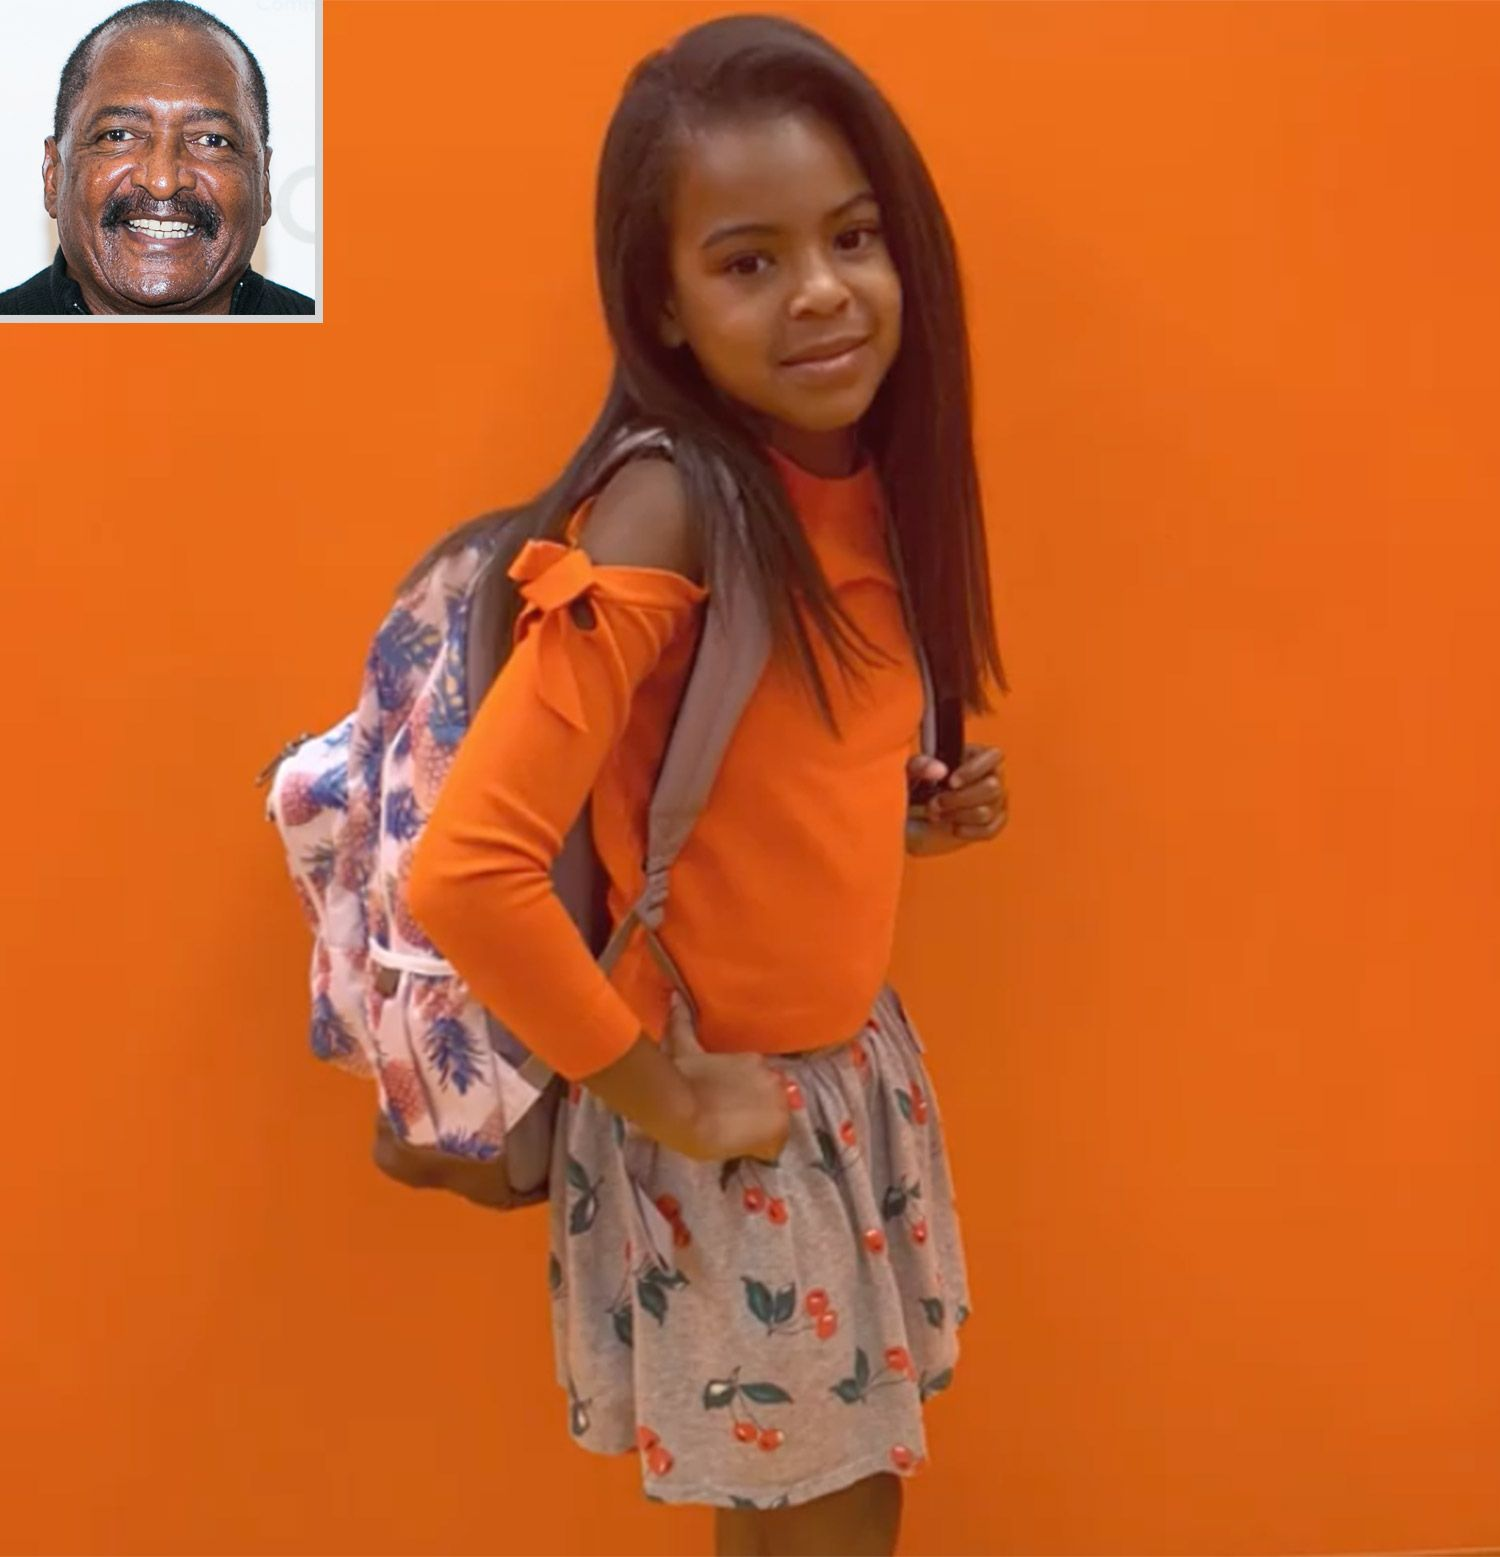 Beyoncé's Dad Mathew Knowles Wishes 'Beautiful' Blue Ivy a